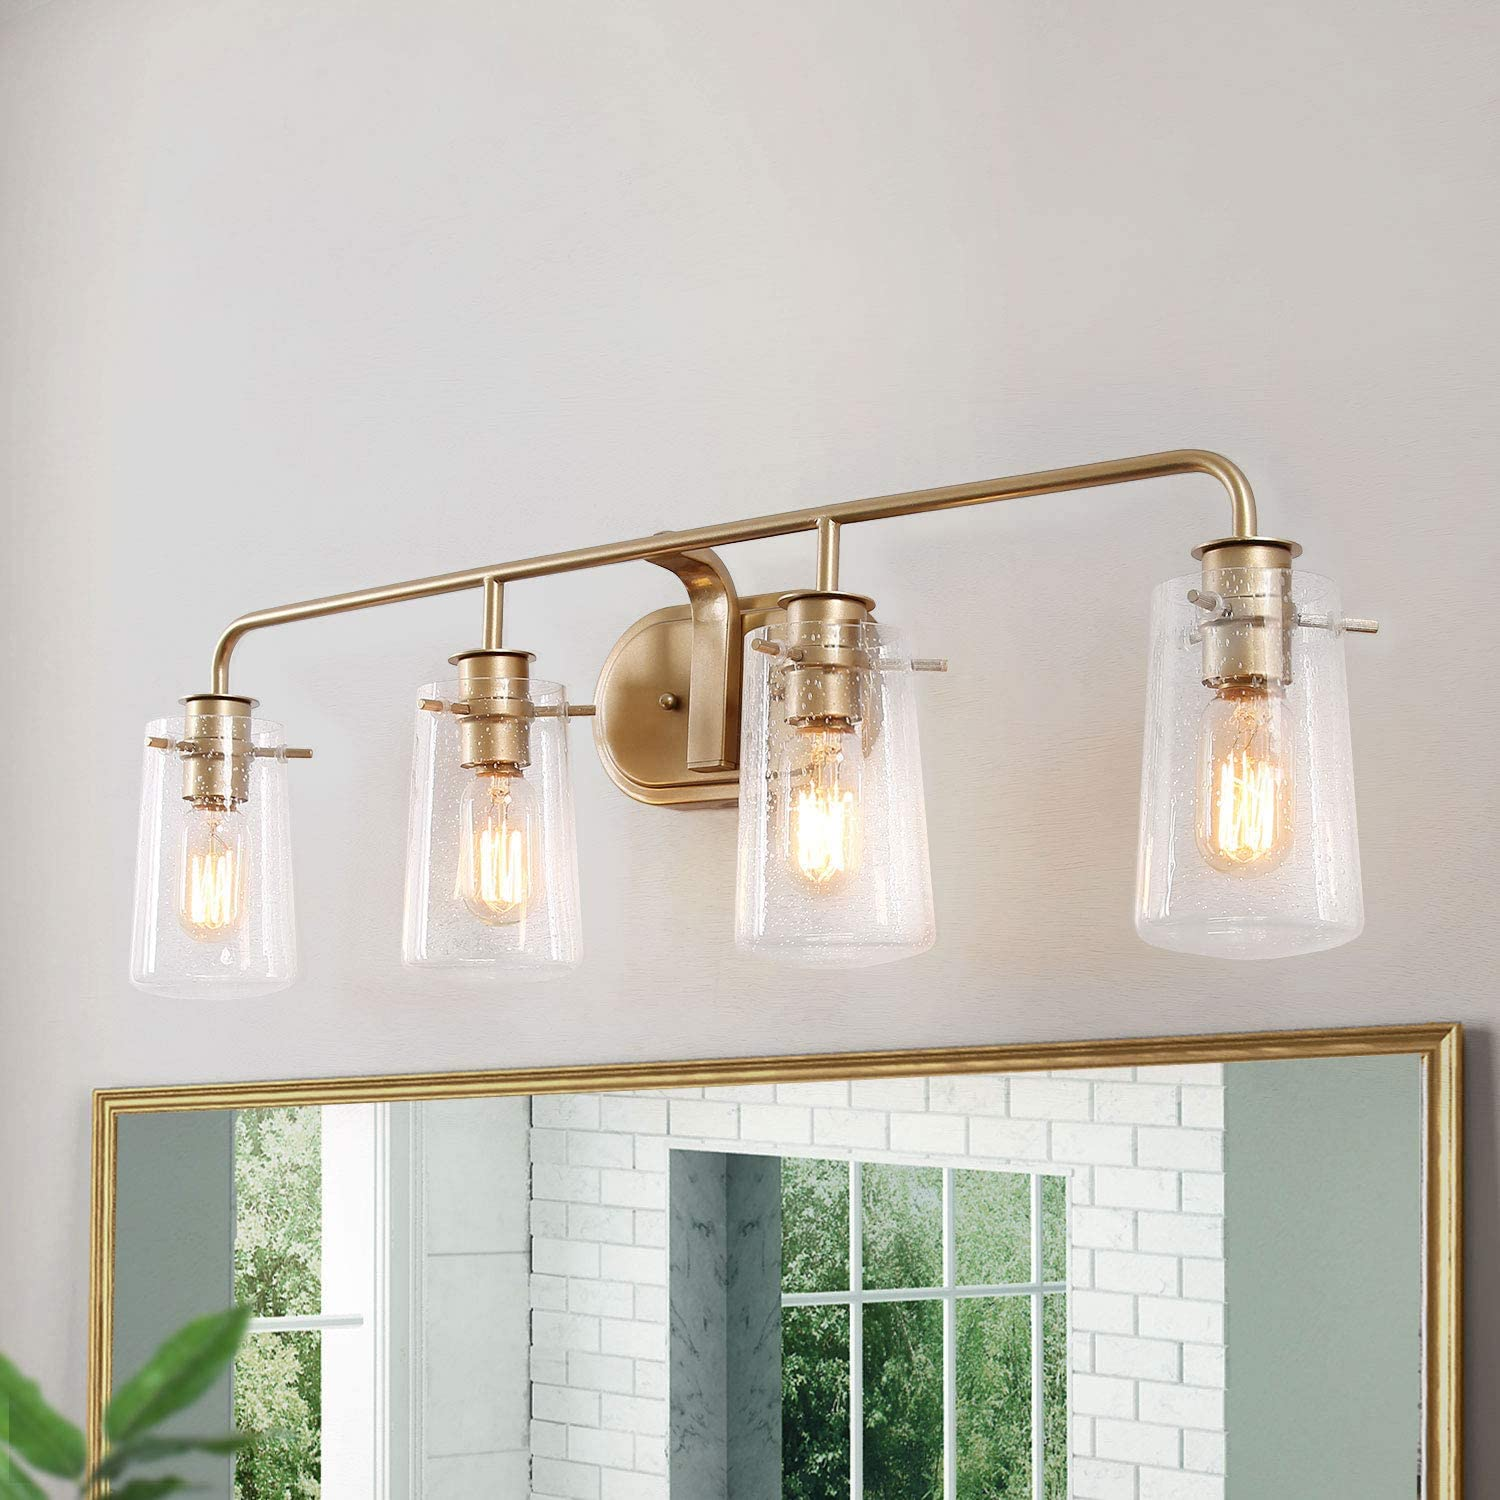 Ksana Vanity Lights Bathroom Fixtures Over Mirror In Antique Brass Metal Finish With Clear Bubbled Glass Shades Mid Century Wall Sconce For Dressing Rooms Amazon Com